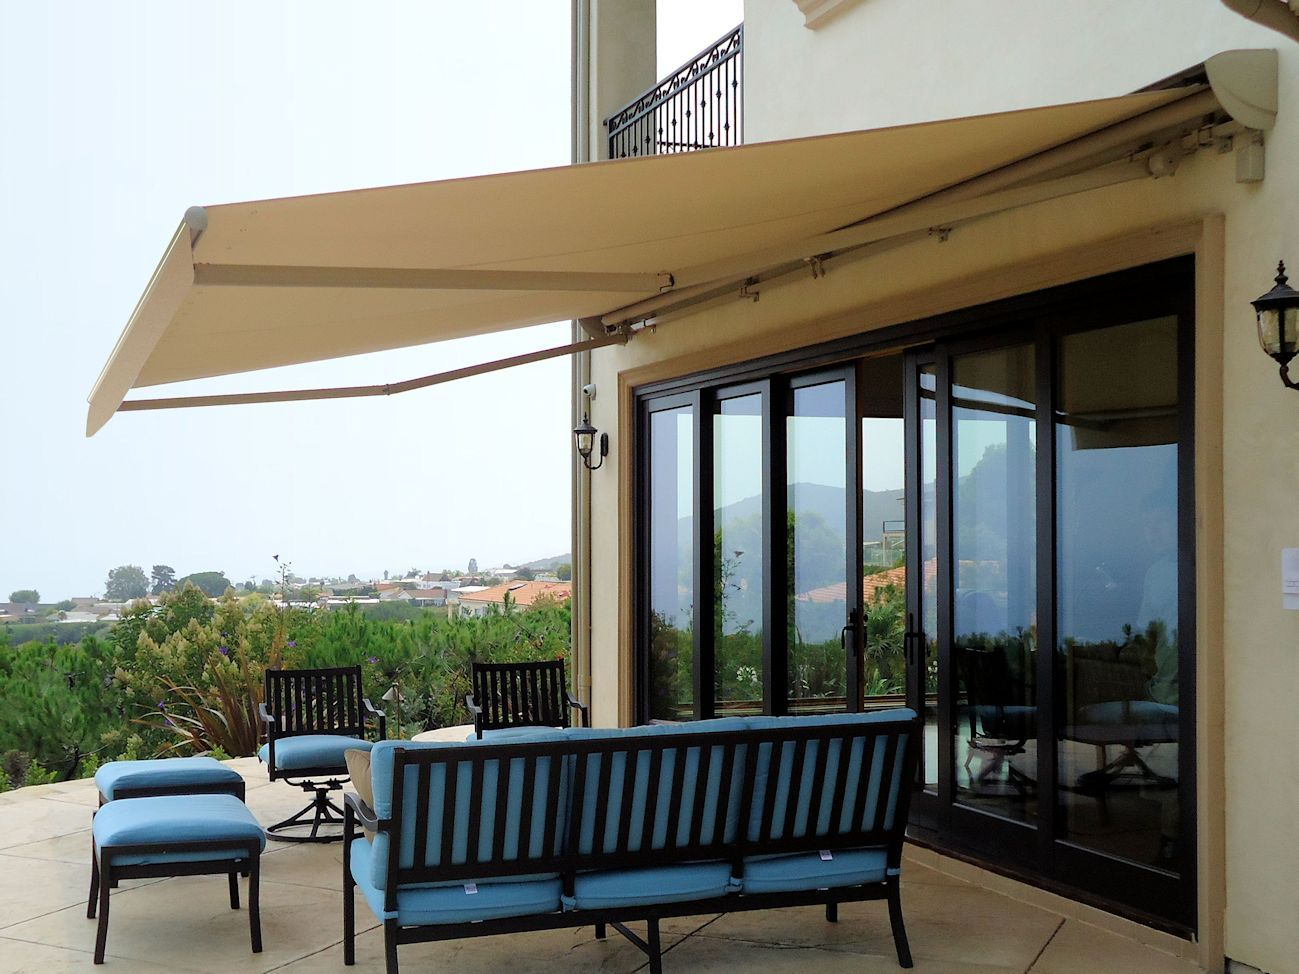 Retractable Awnings | Superior Awning & Retractable Awnings | Superior Awning | Condo decor | Pinterest ...